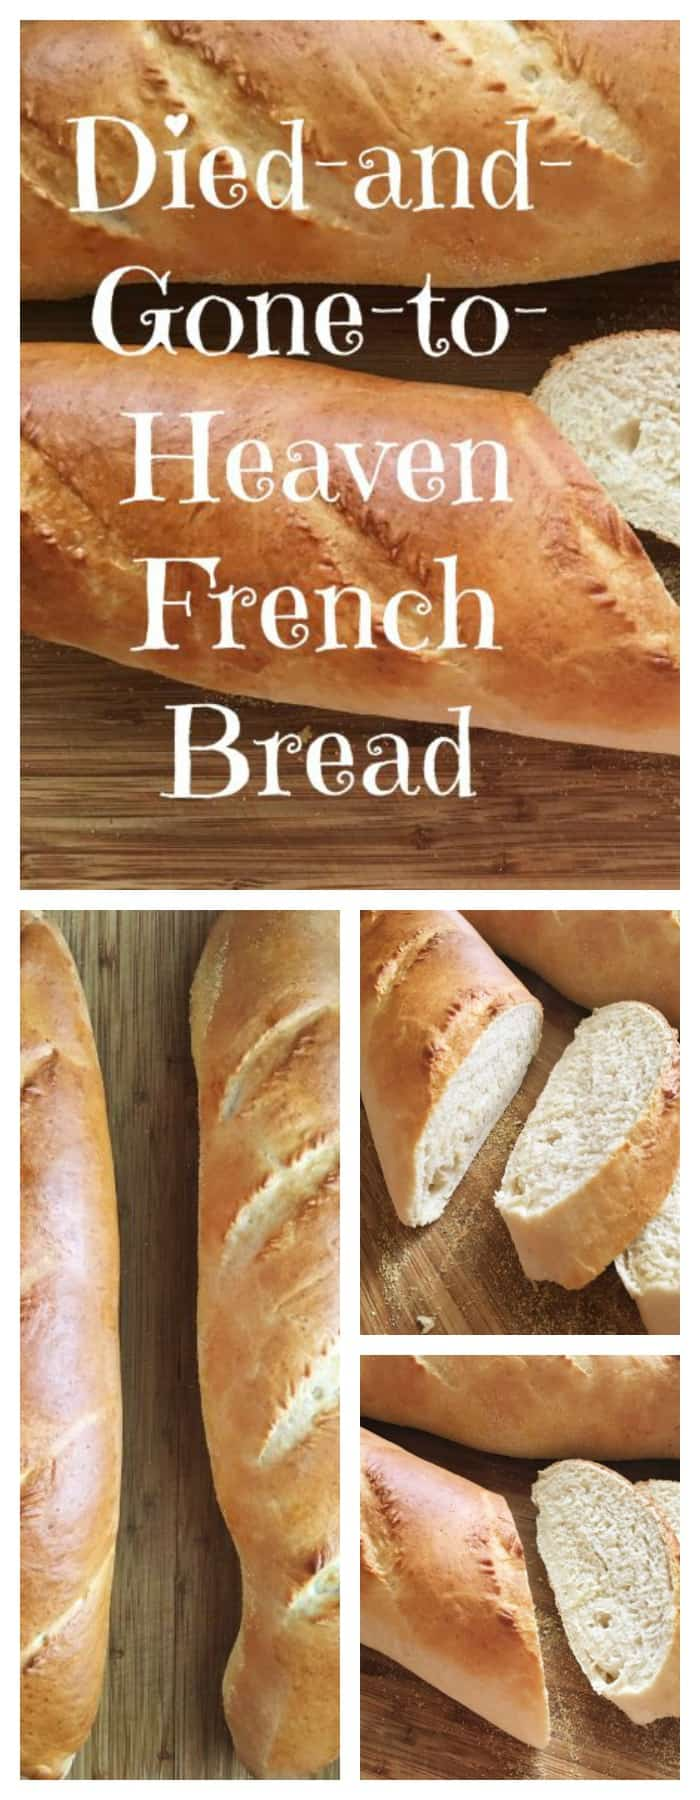 Died and Gone to Heaven French Bread Recipe